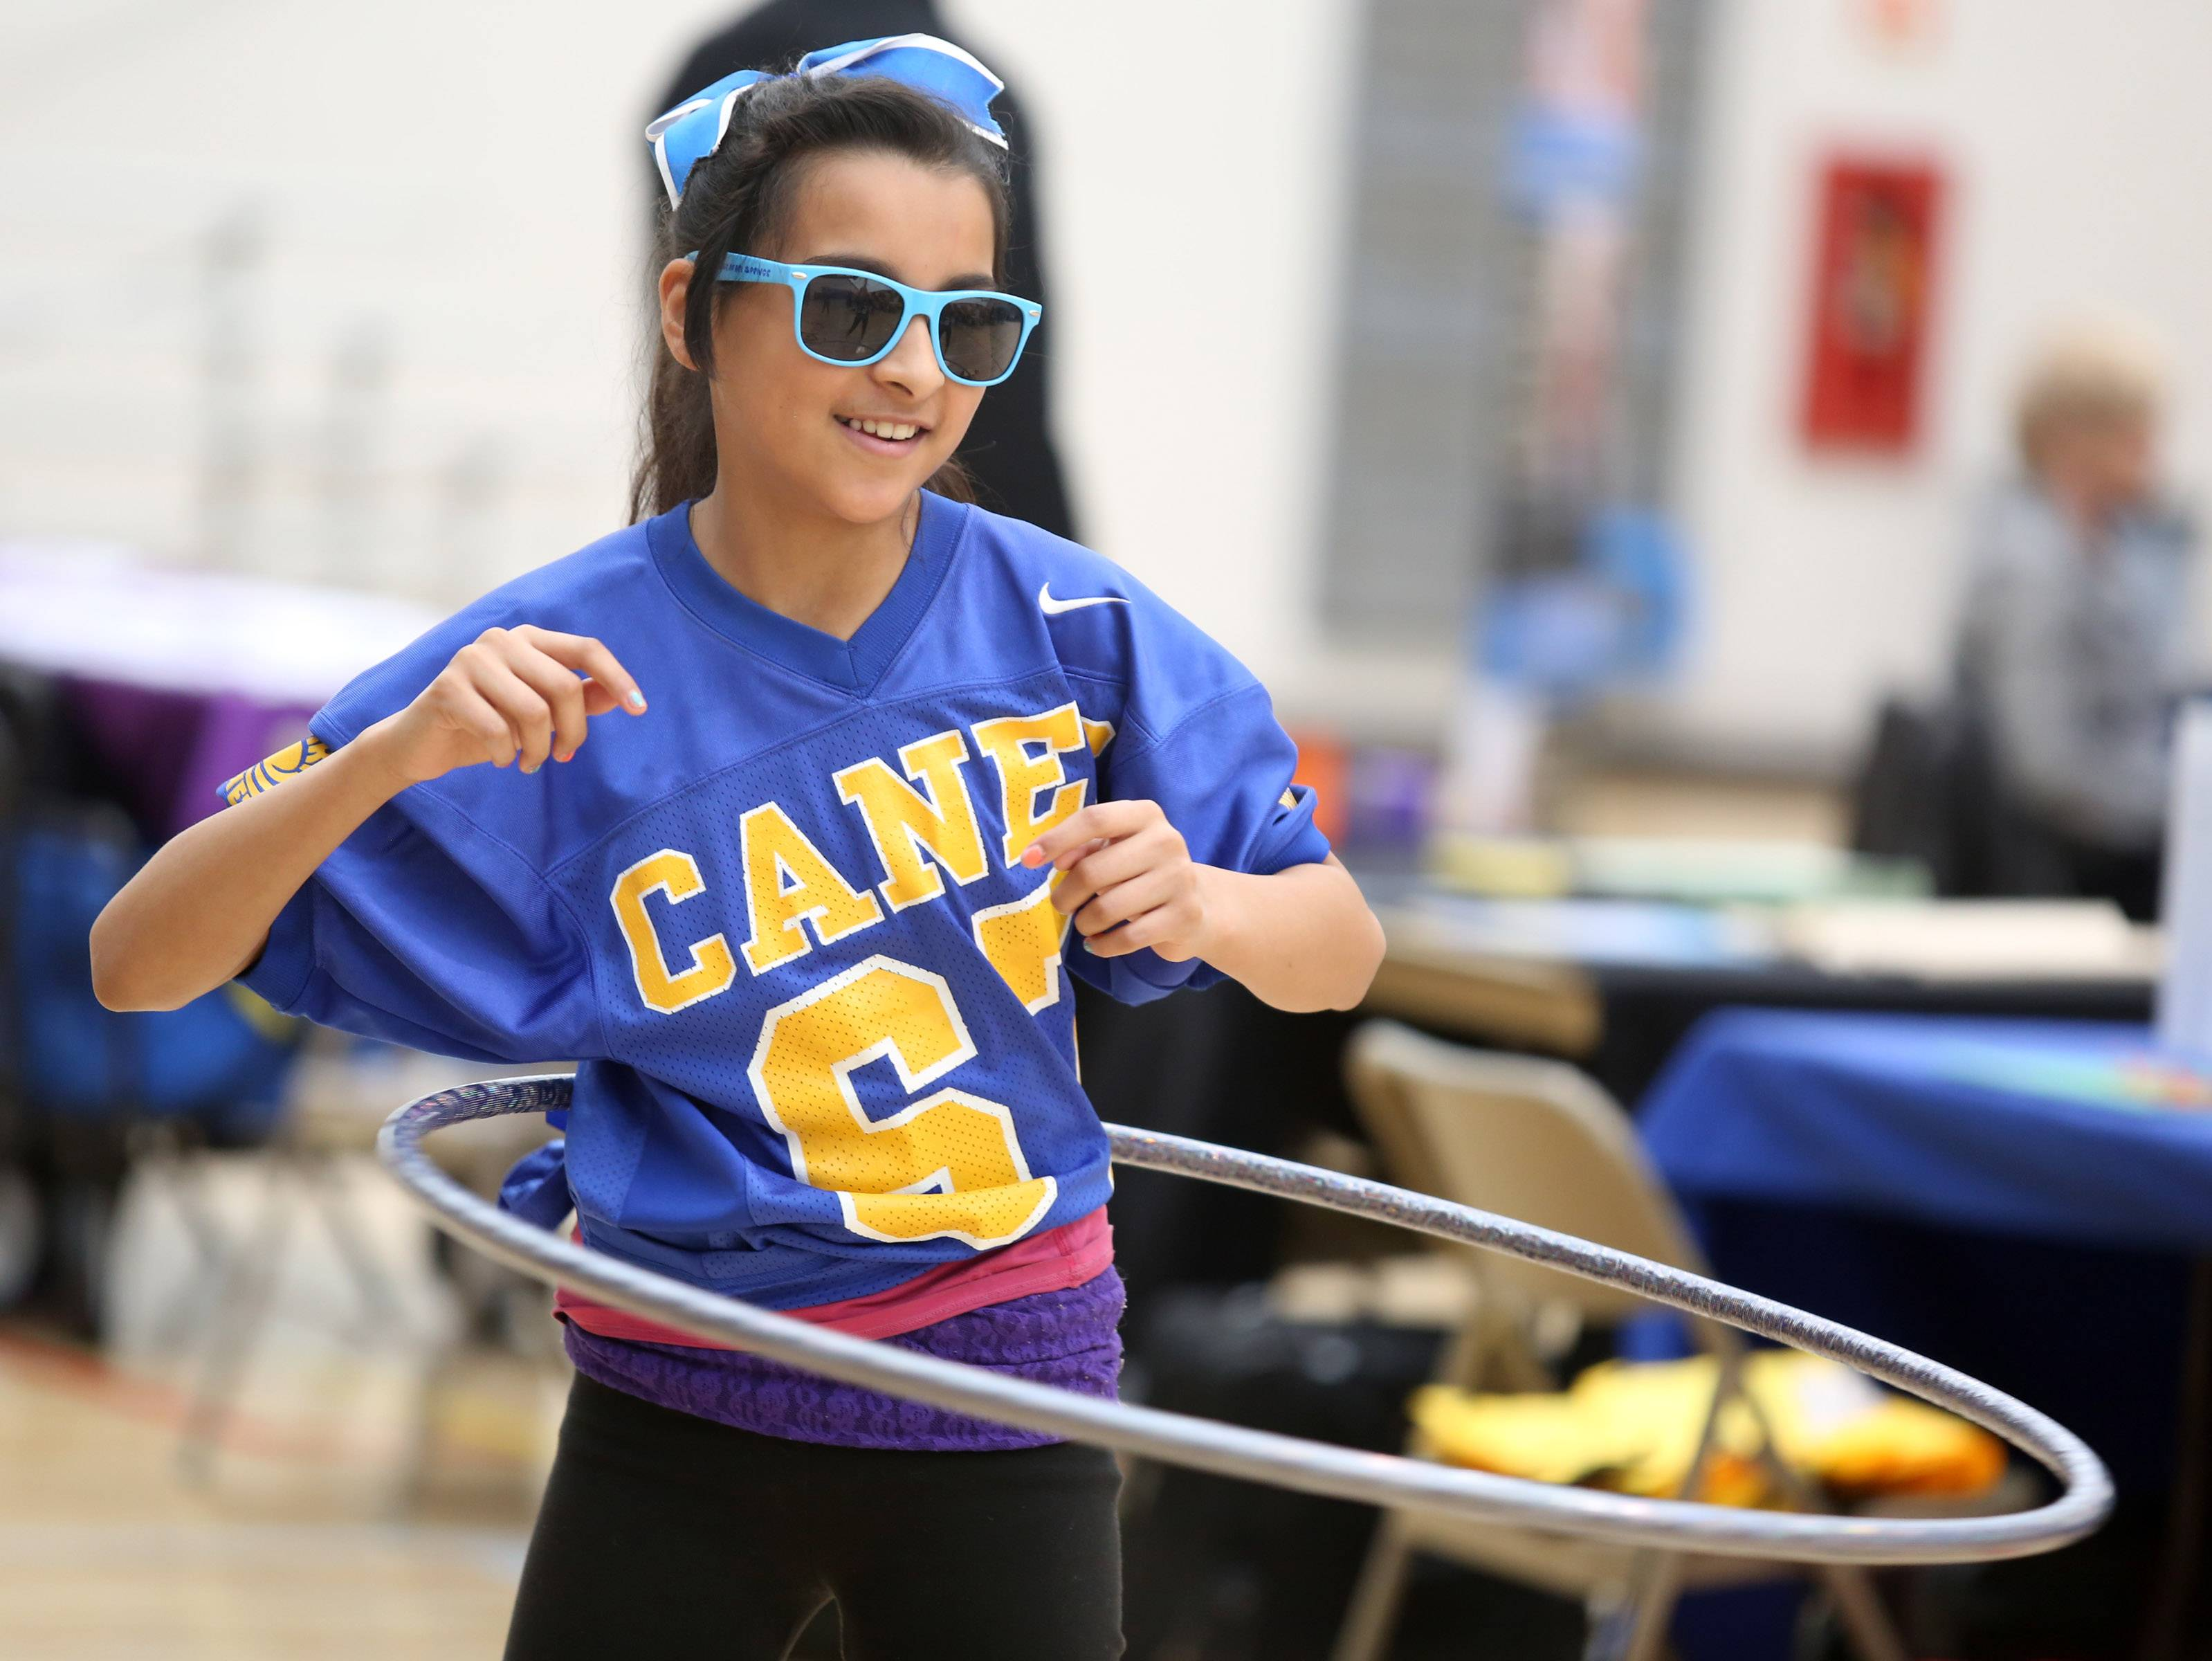 Roxanna Perez, 11, of Hanover Park participates in a hula-hoop contest at the Kids at Hope Community Resource Fair at Hanover Park's Community Center Gym on Saturday.